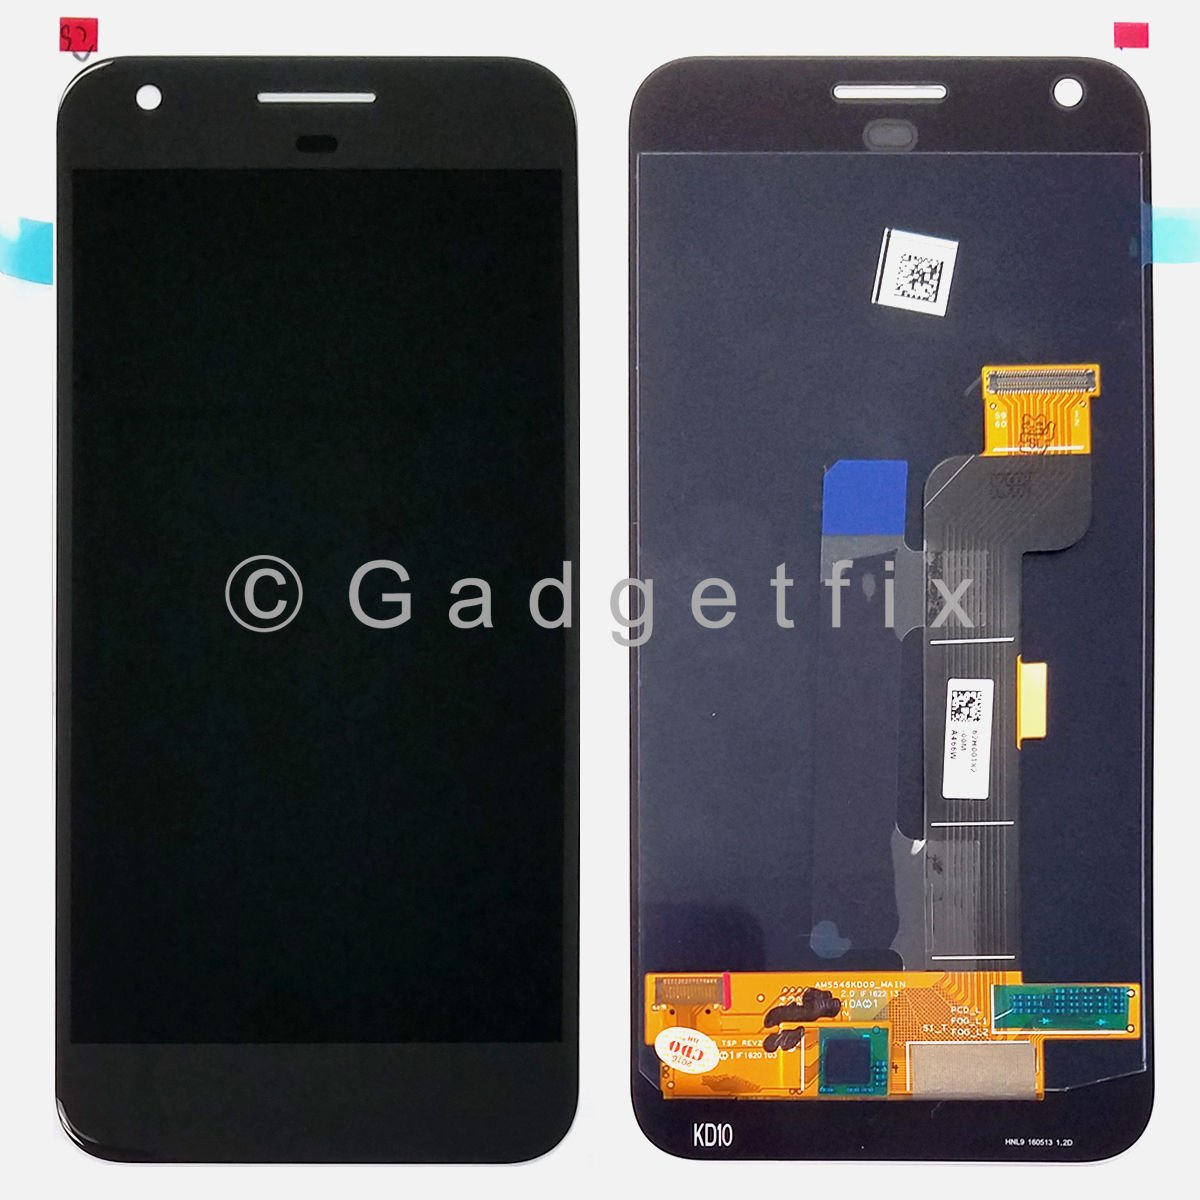 Google Pixel XL 5.5 Display LCD Touch Screen Digitizer Assembly + Adhesive